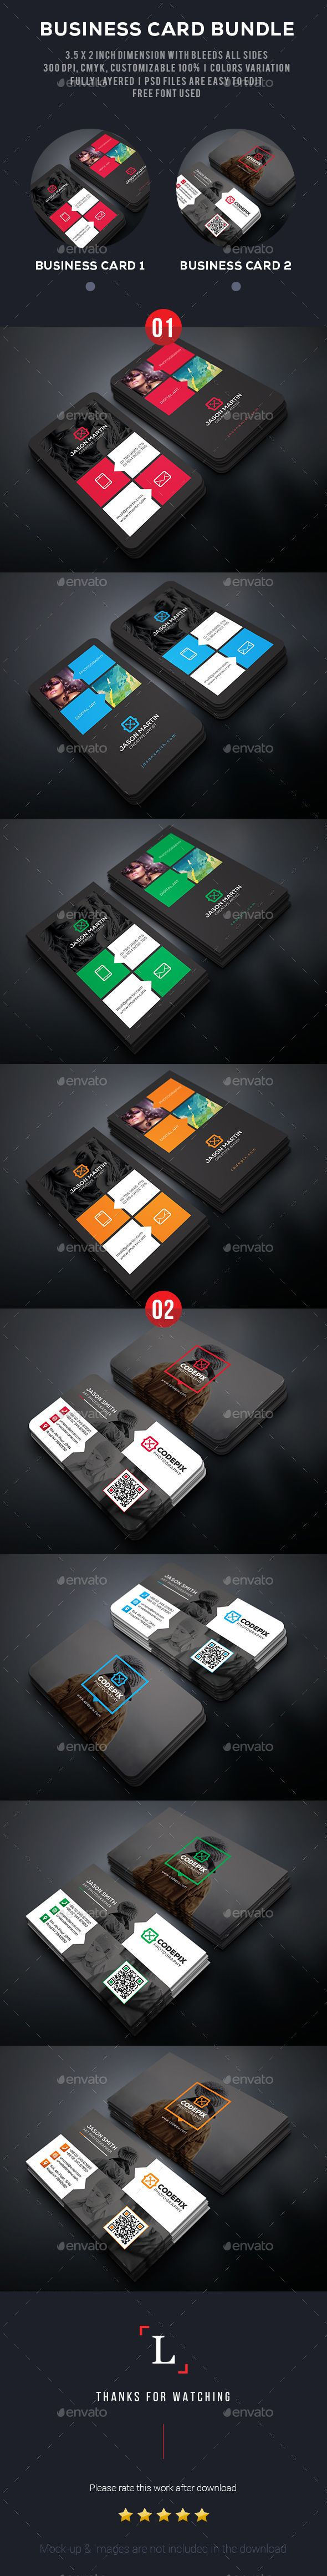 175 best Bussiness cards images on Pinterest